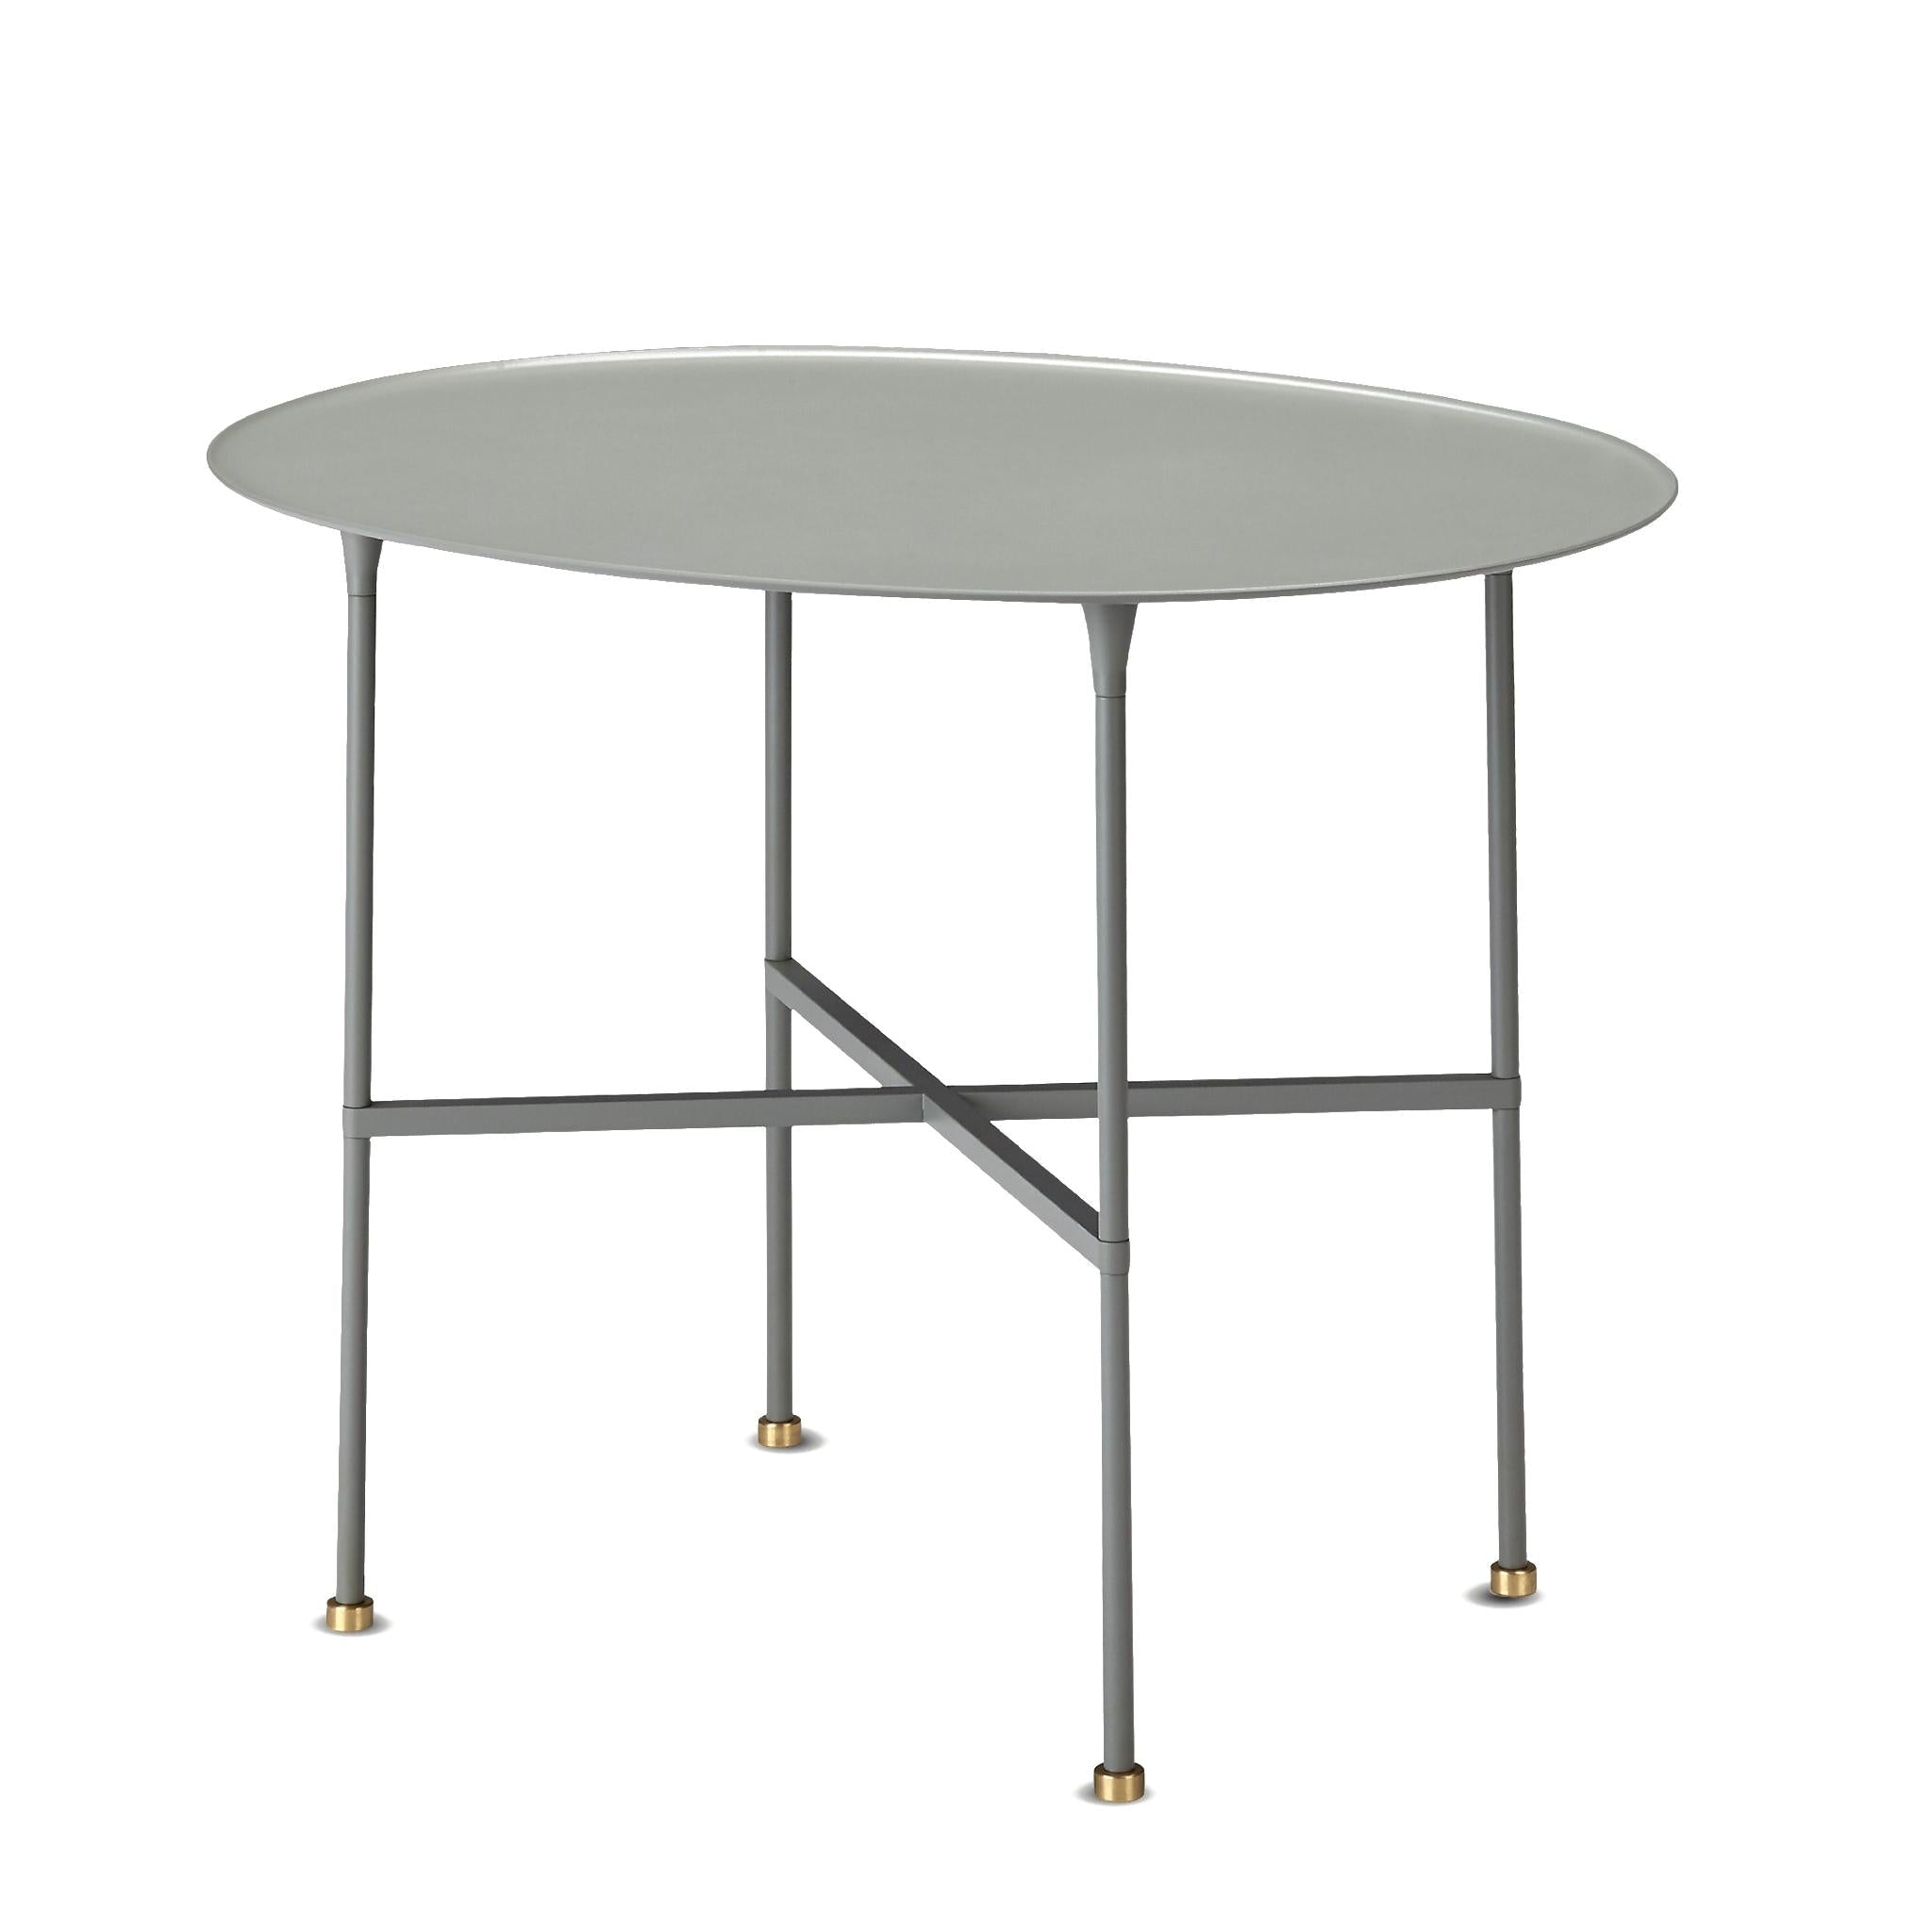 Brut Table by Skagerak